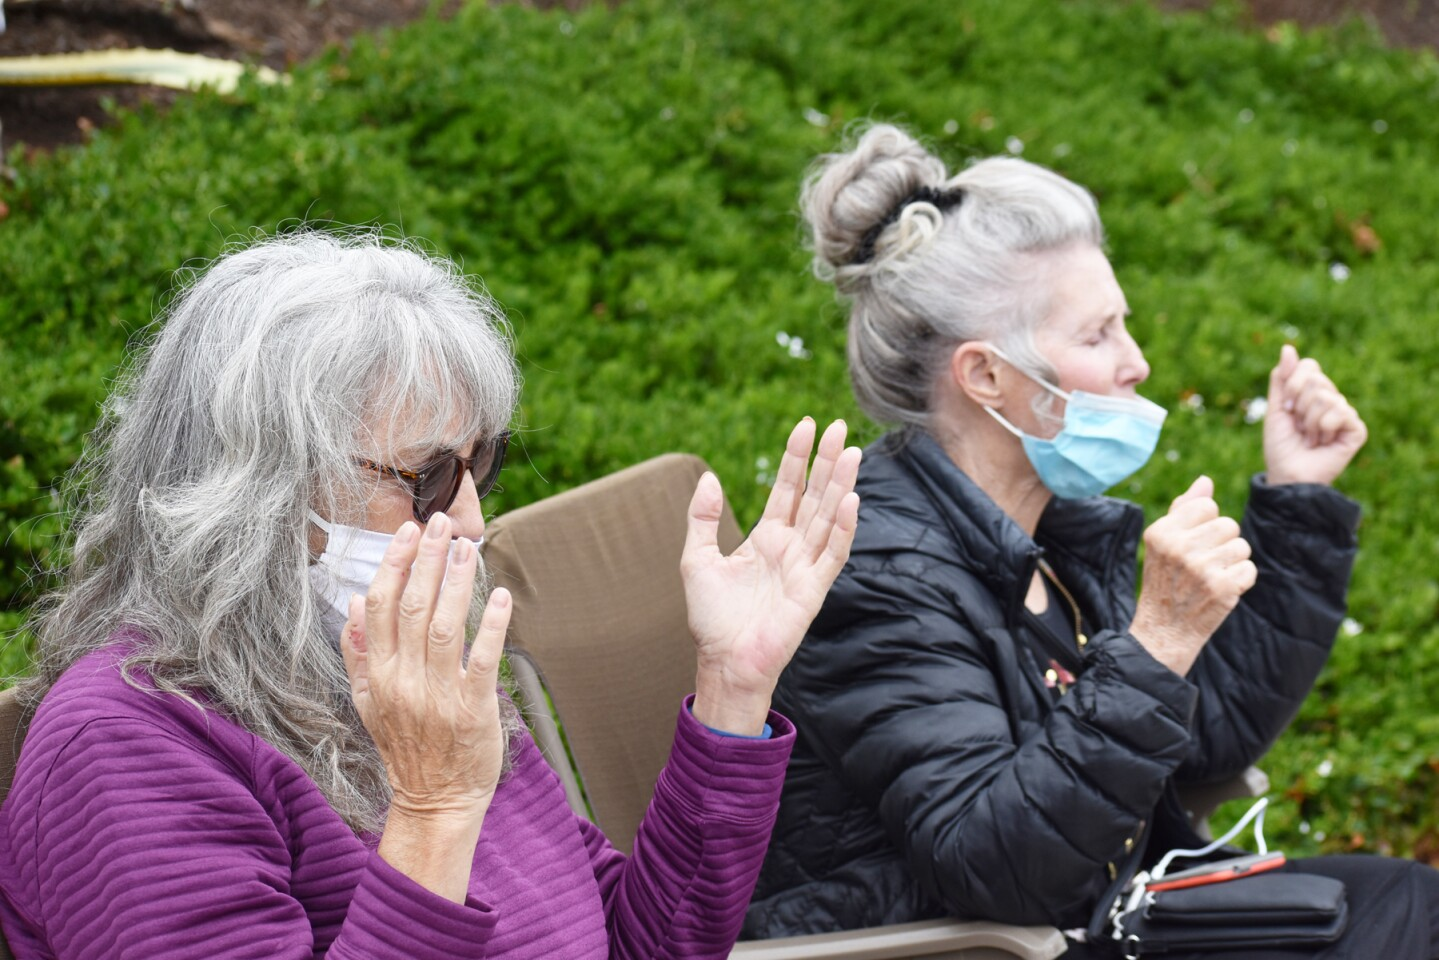 Participants praying along the blocks adjacent to Carmel Mountain Road and Rancho Carmel Drive intersection.